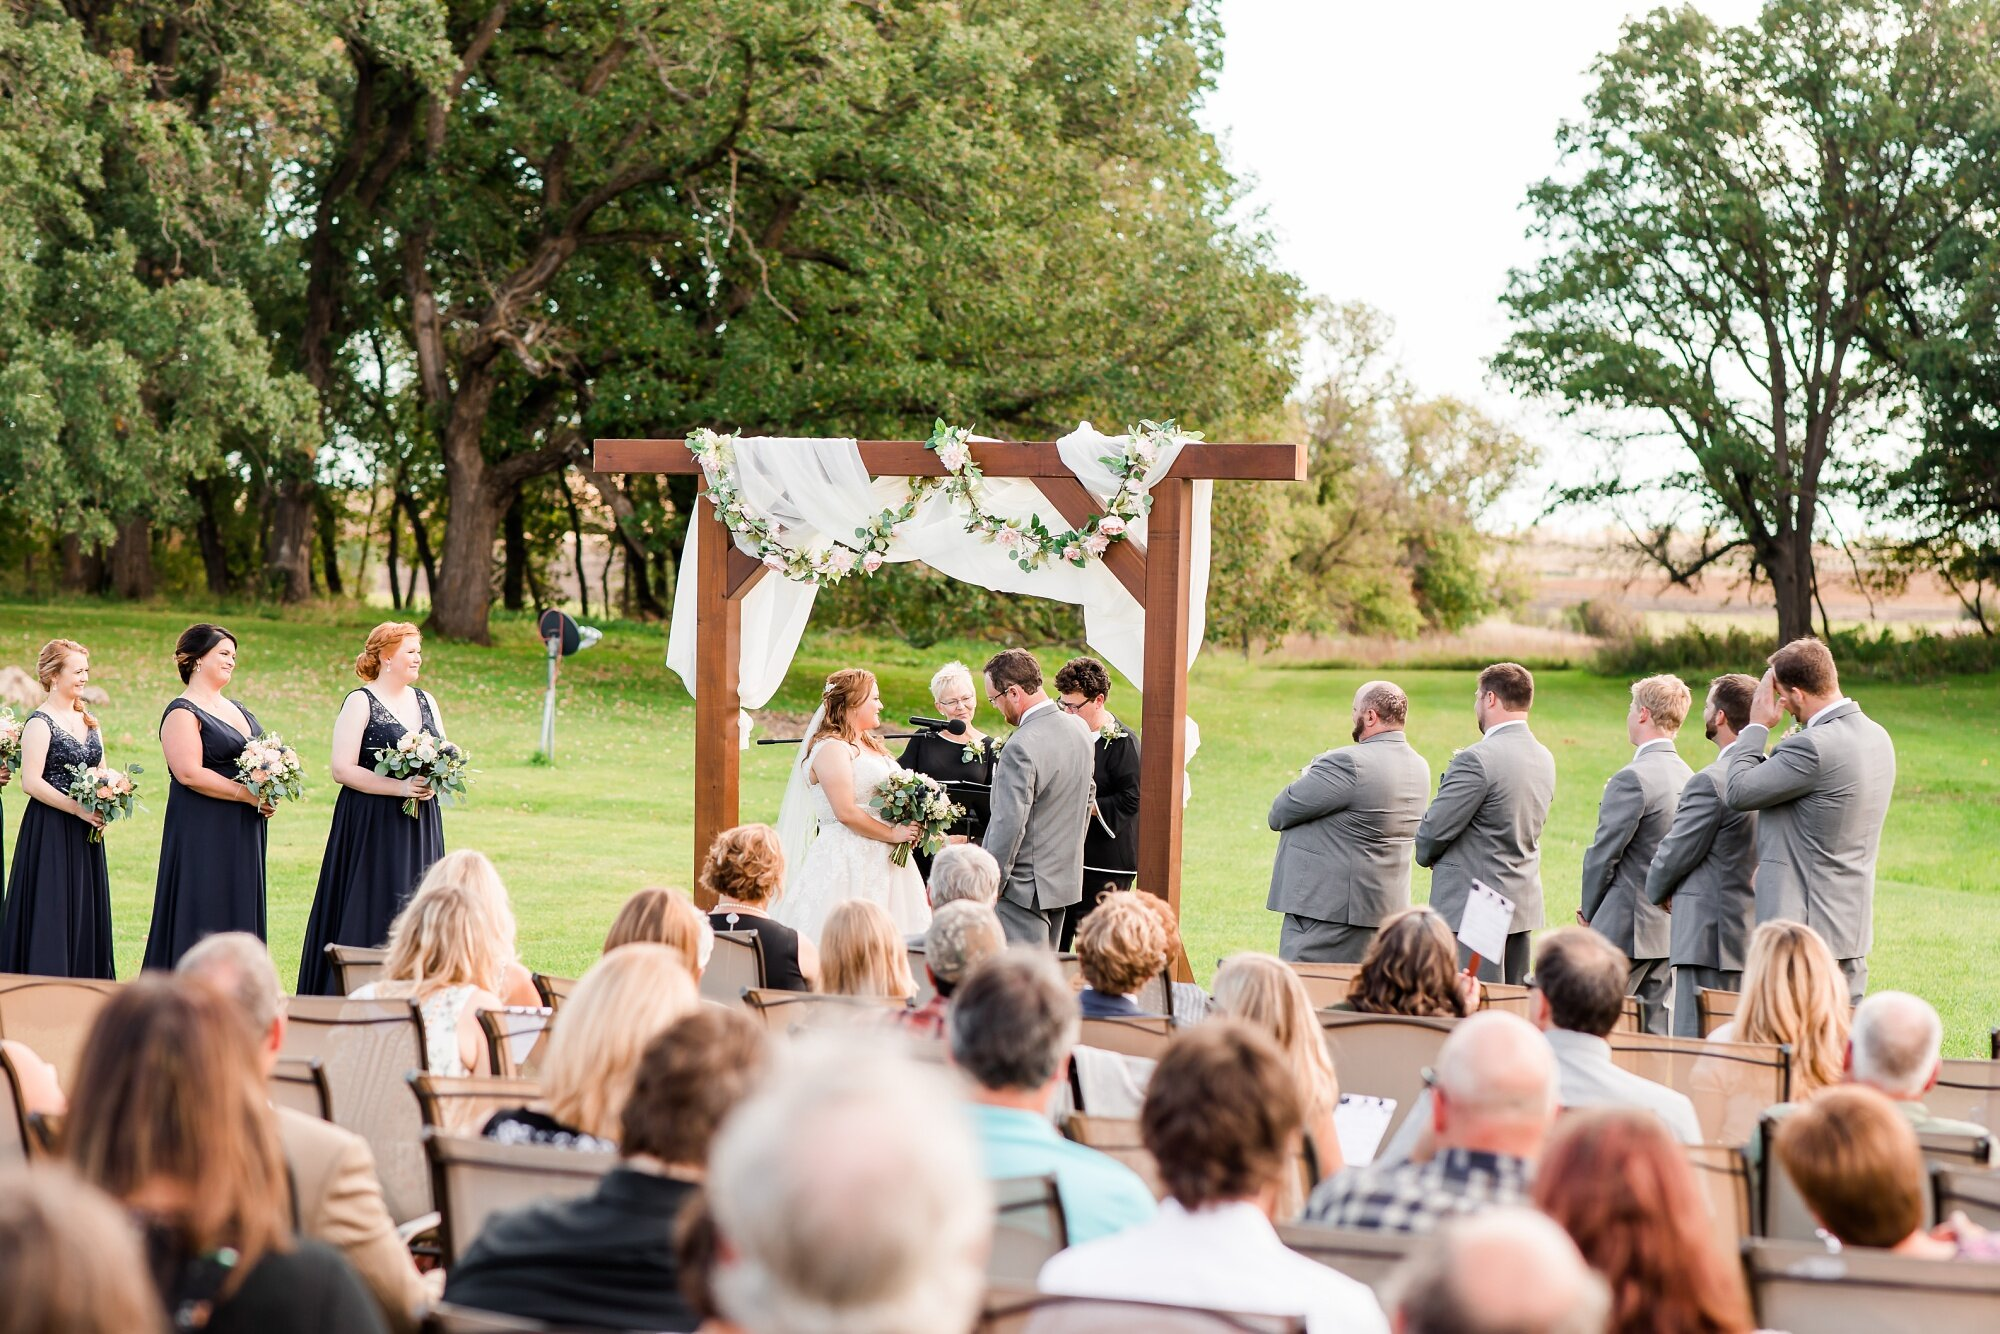 Amber Langerud Photography_Lake Park Minnesota, Outdoor Barn Wedding With Horses_6988.jpg